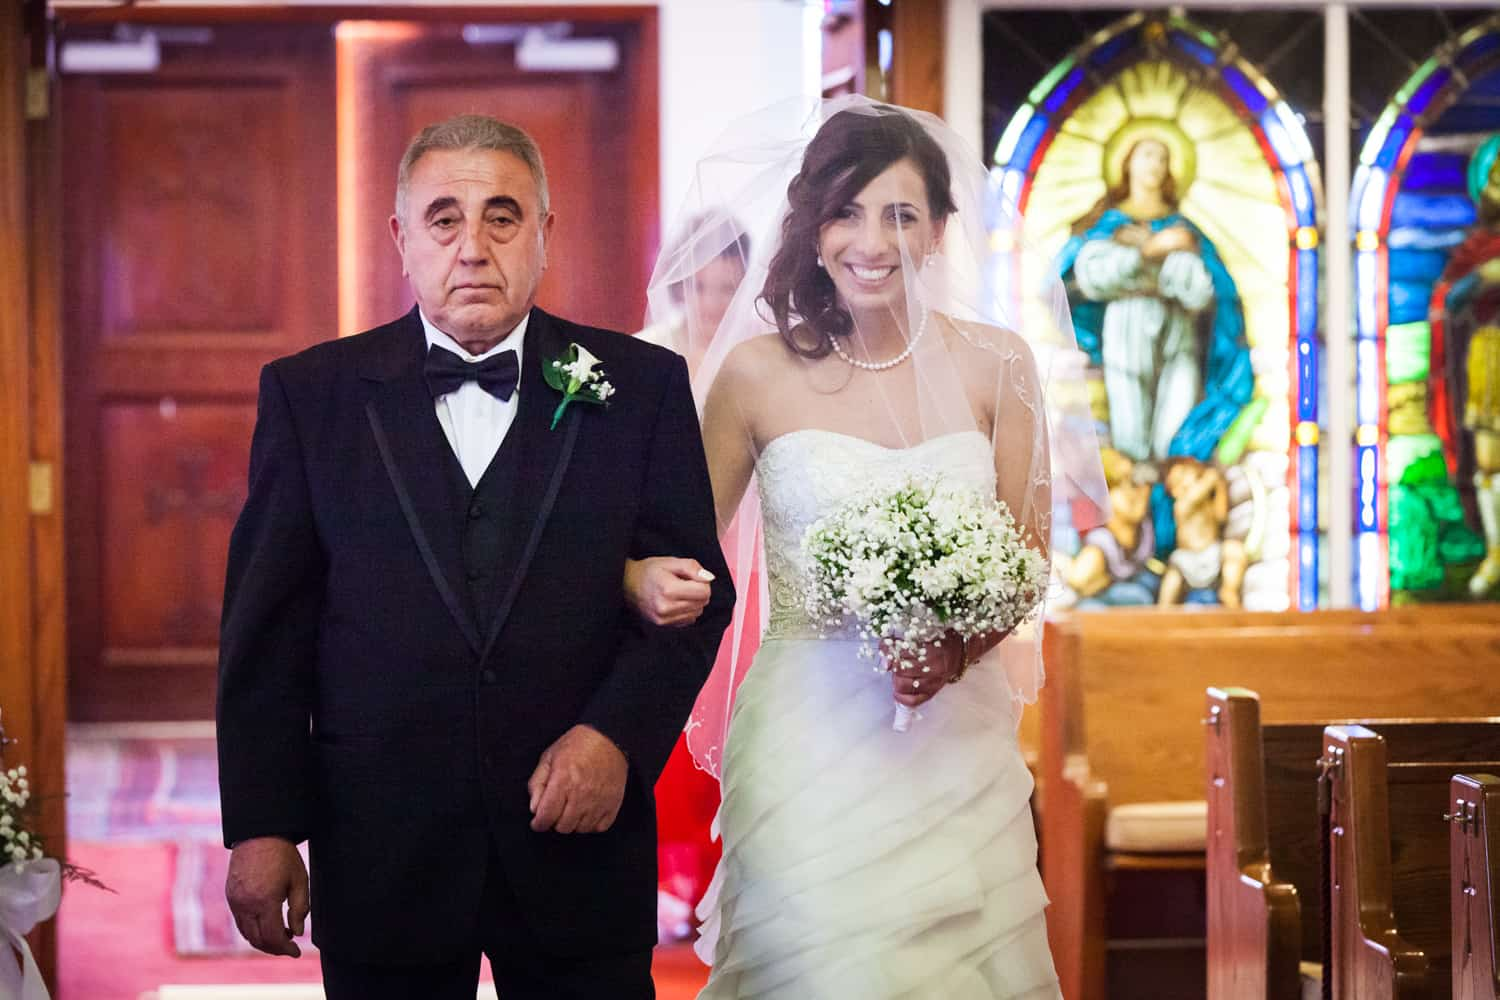 Bride and father walking down aisle in Eastern Orthodox wedding ceremony